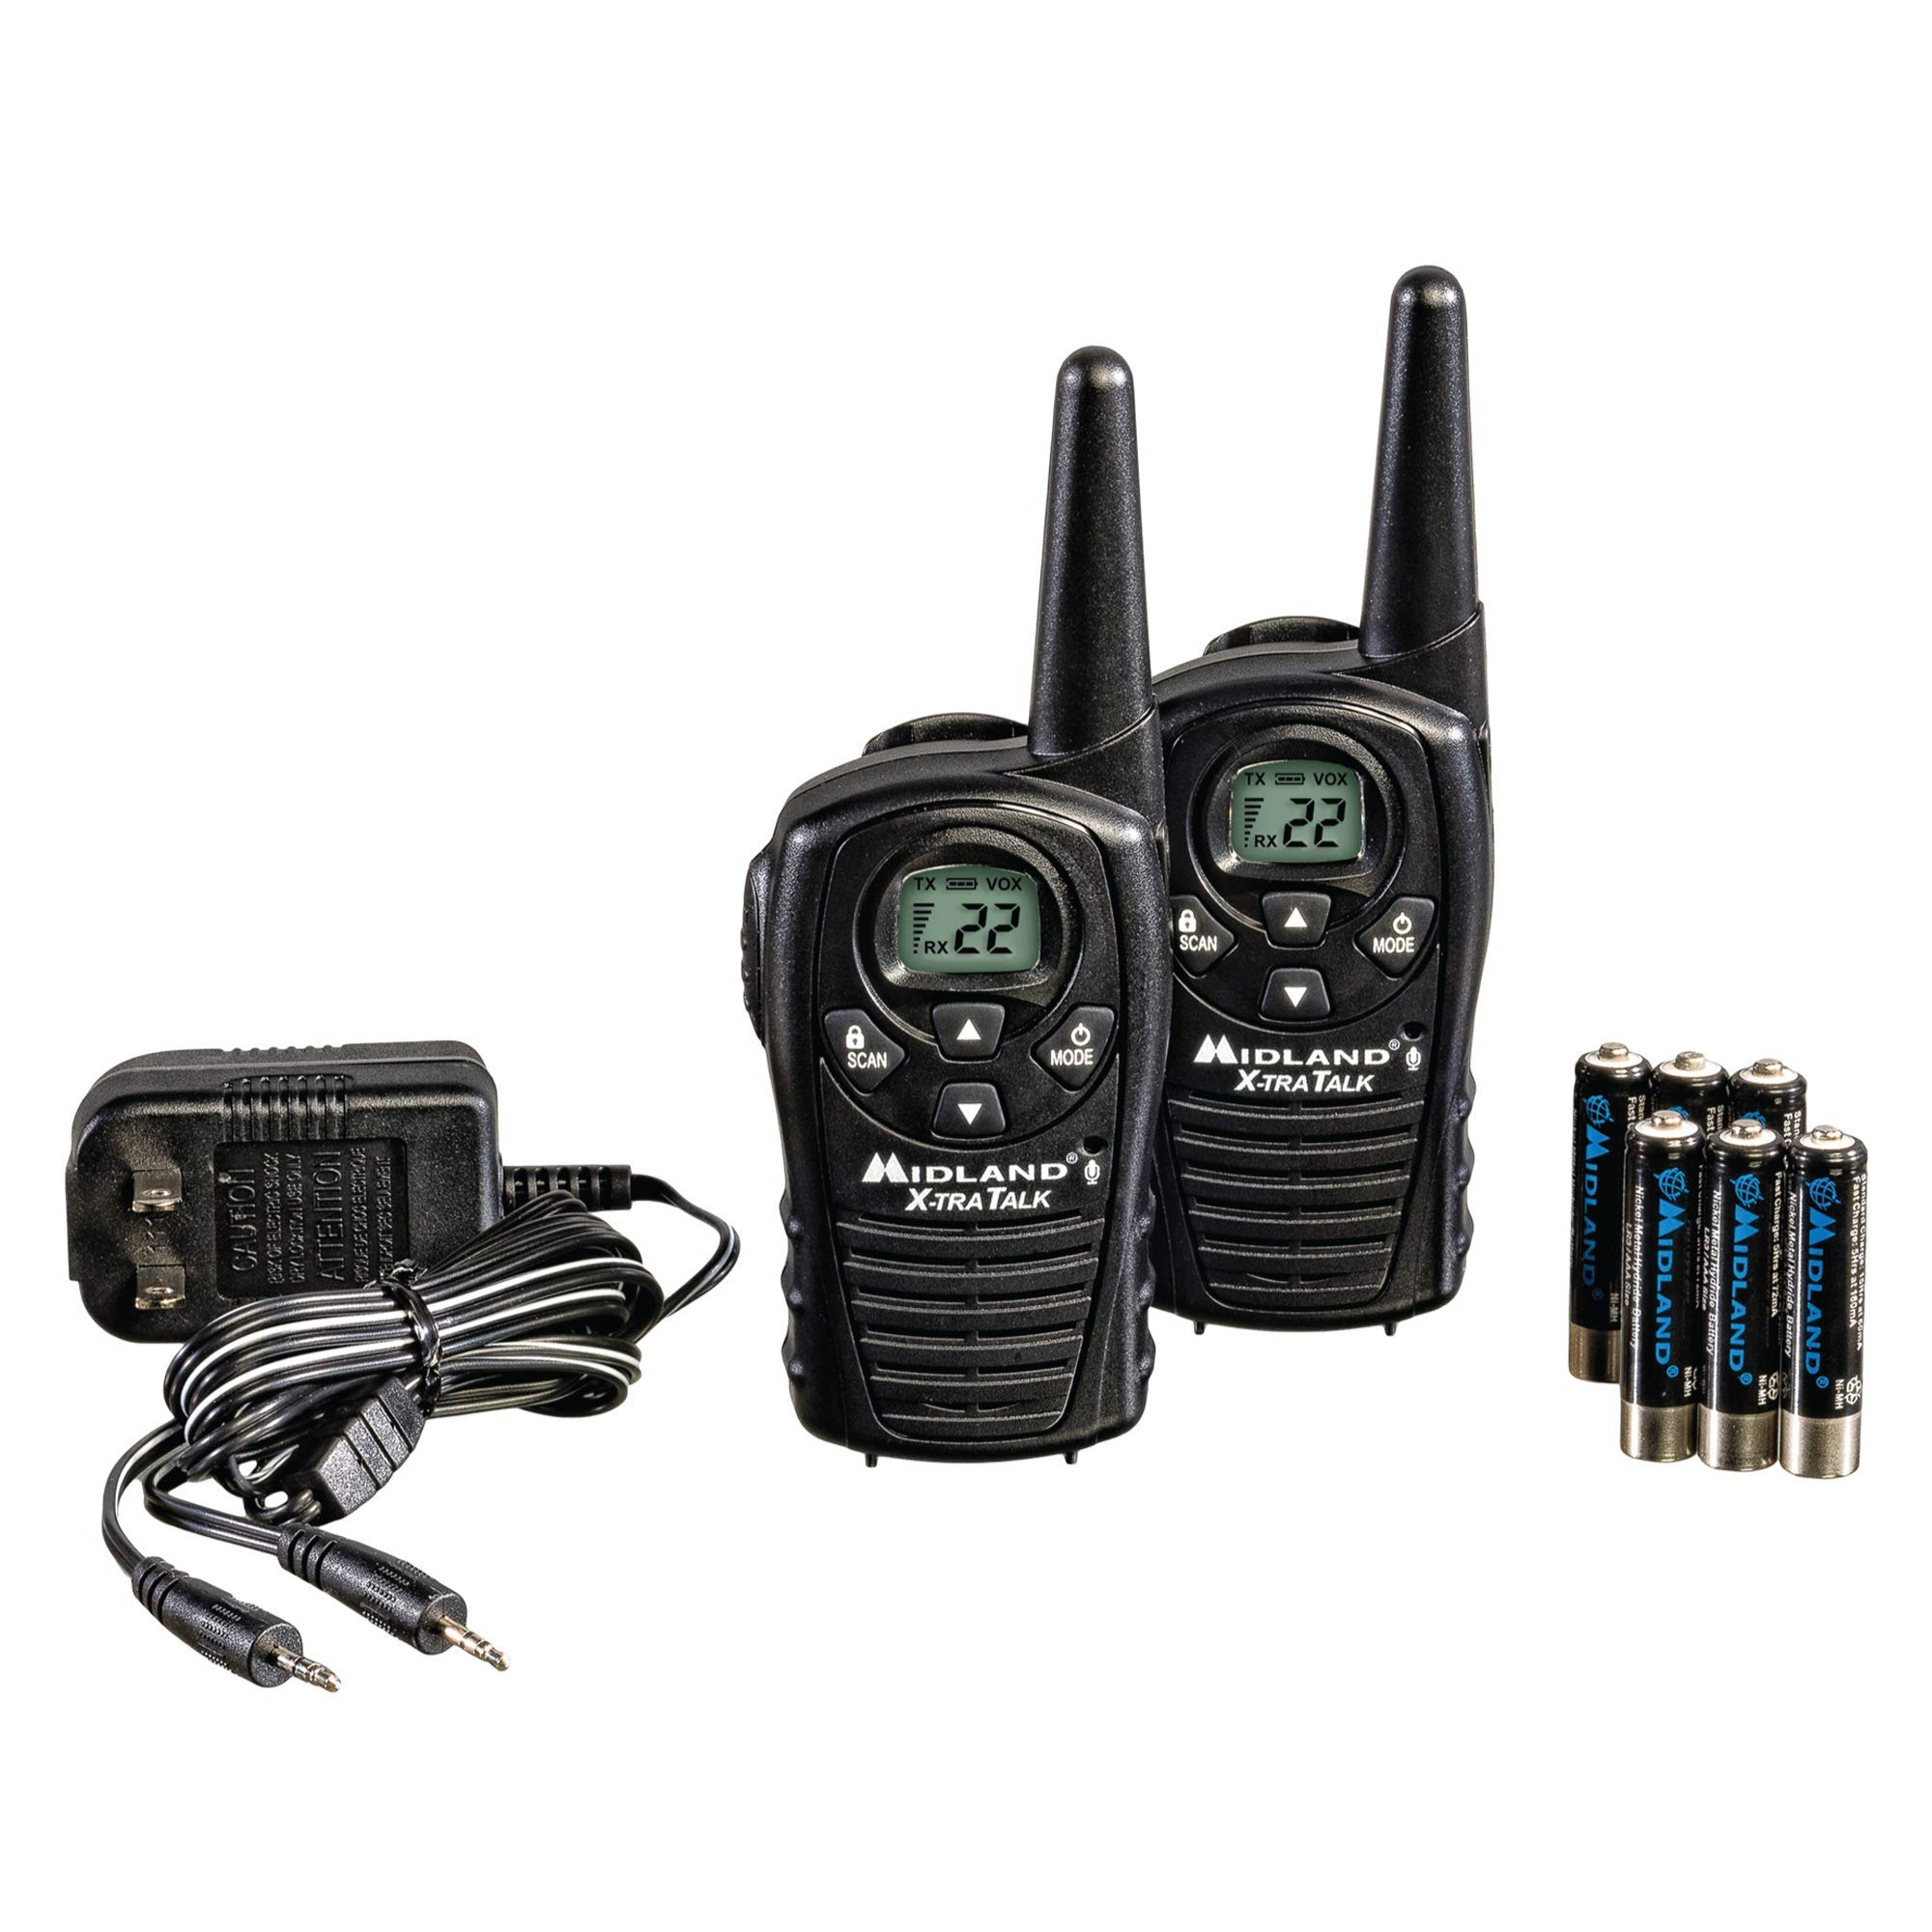 Midland - LXT118VP, 22 Channel FRS Two-Way Radio with Channel Scan - Up to 18 Mile Range Walkie Talkie, Hands-Free VOX, Water Resistant (Pair Pack) (Black) by Midland